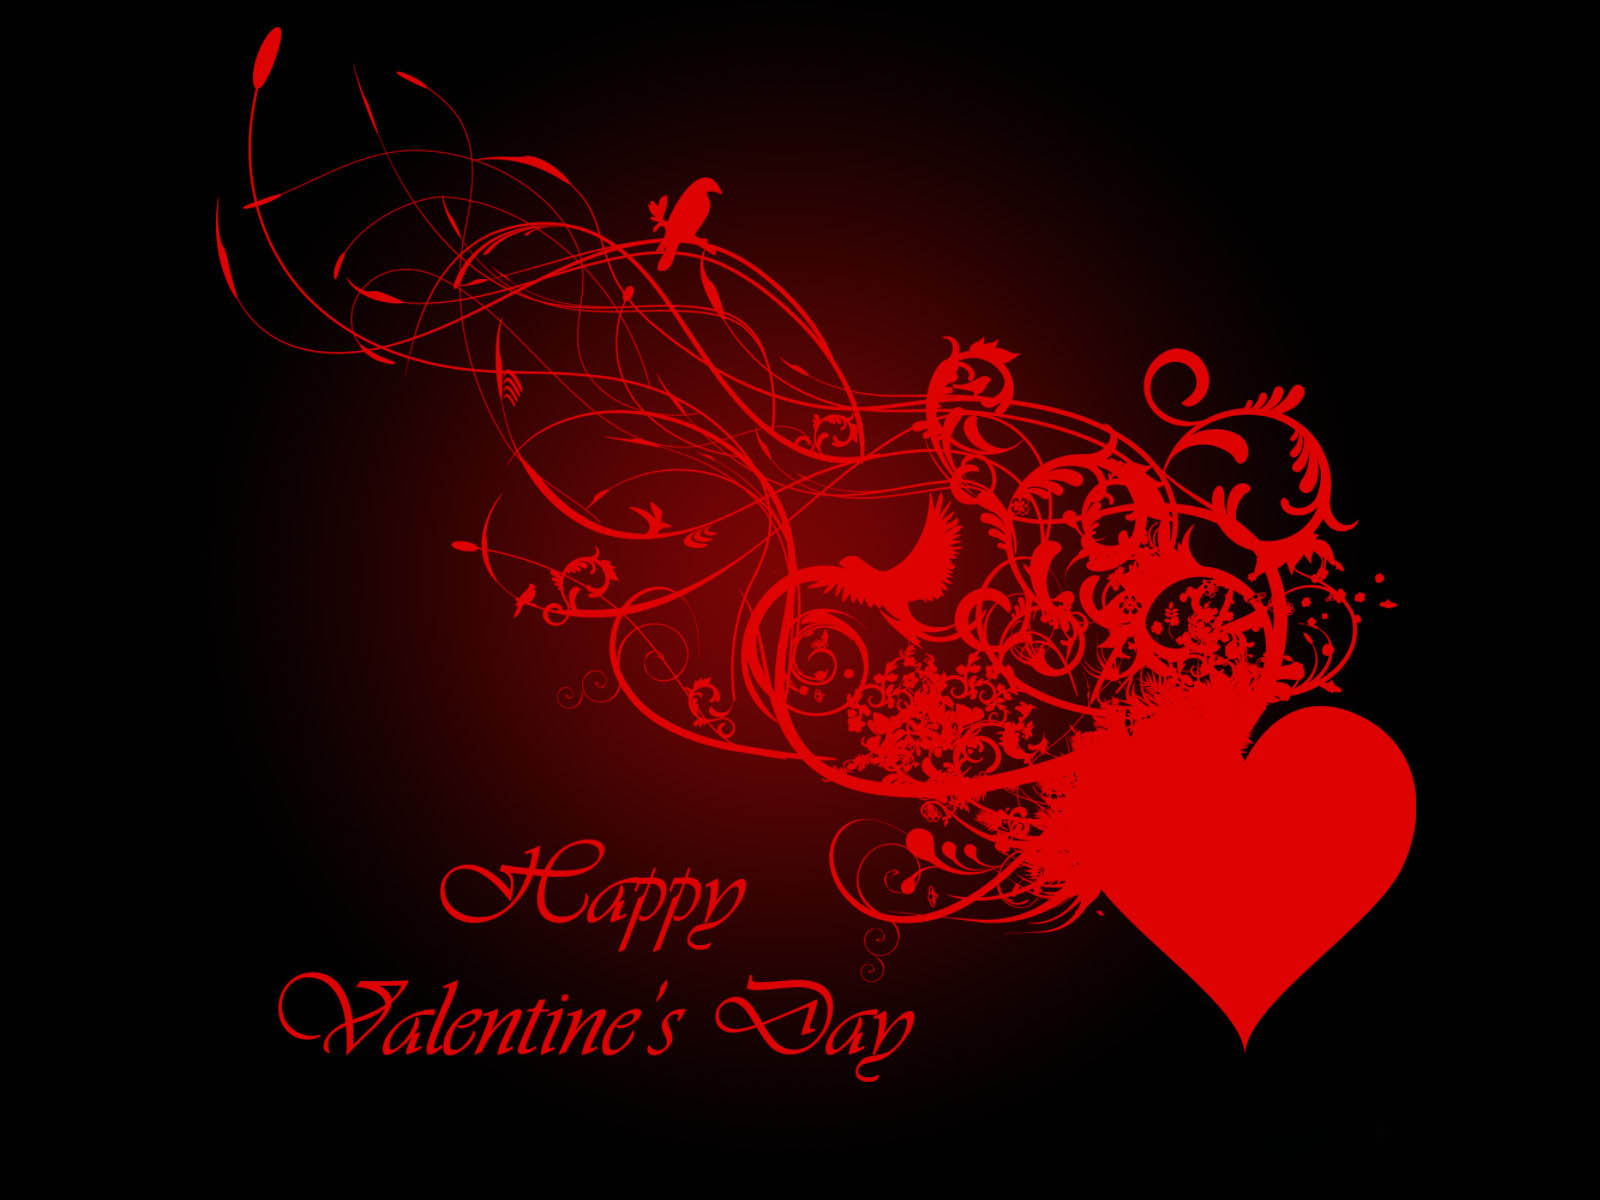 wallpapers: Valentines Day Wallpapers 2013